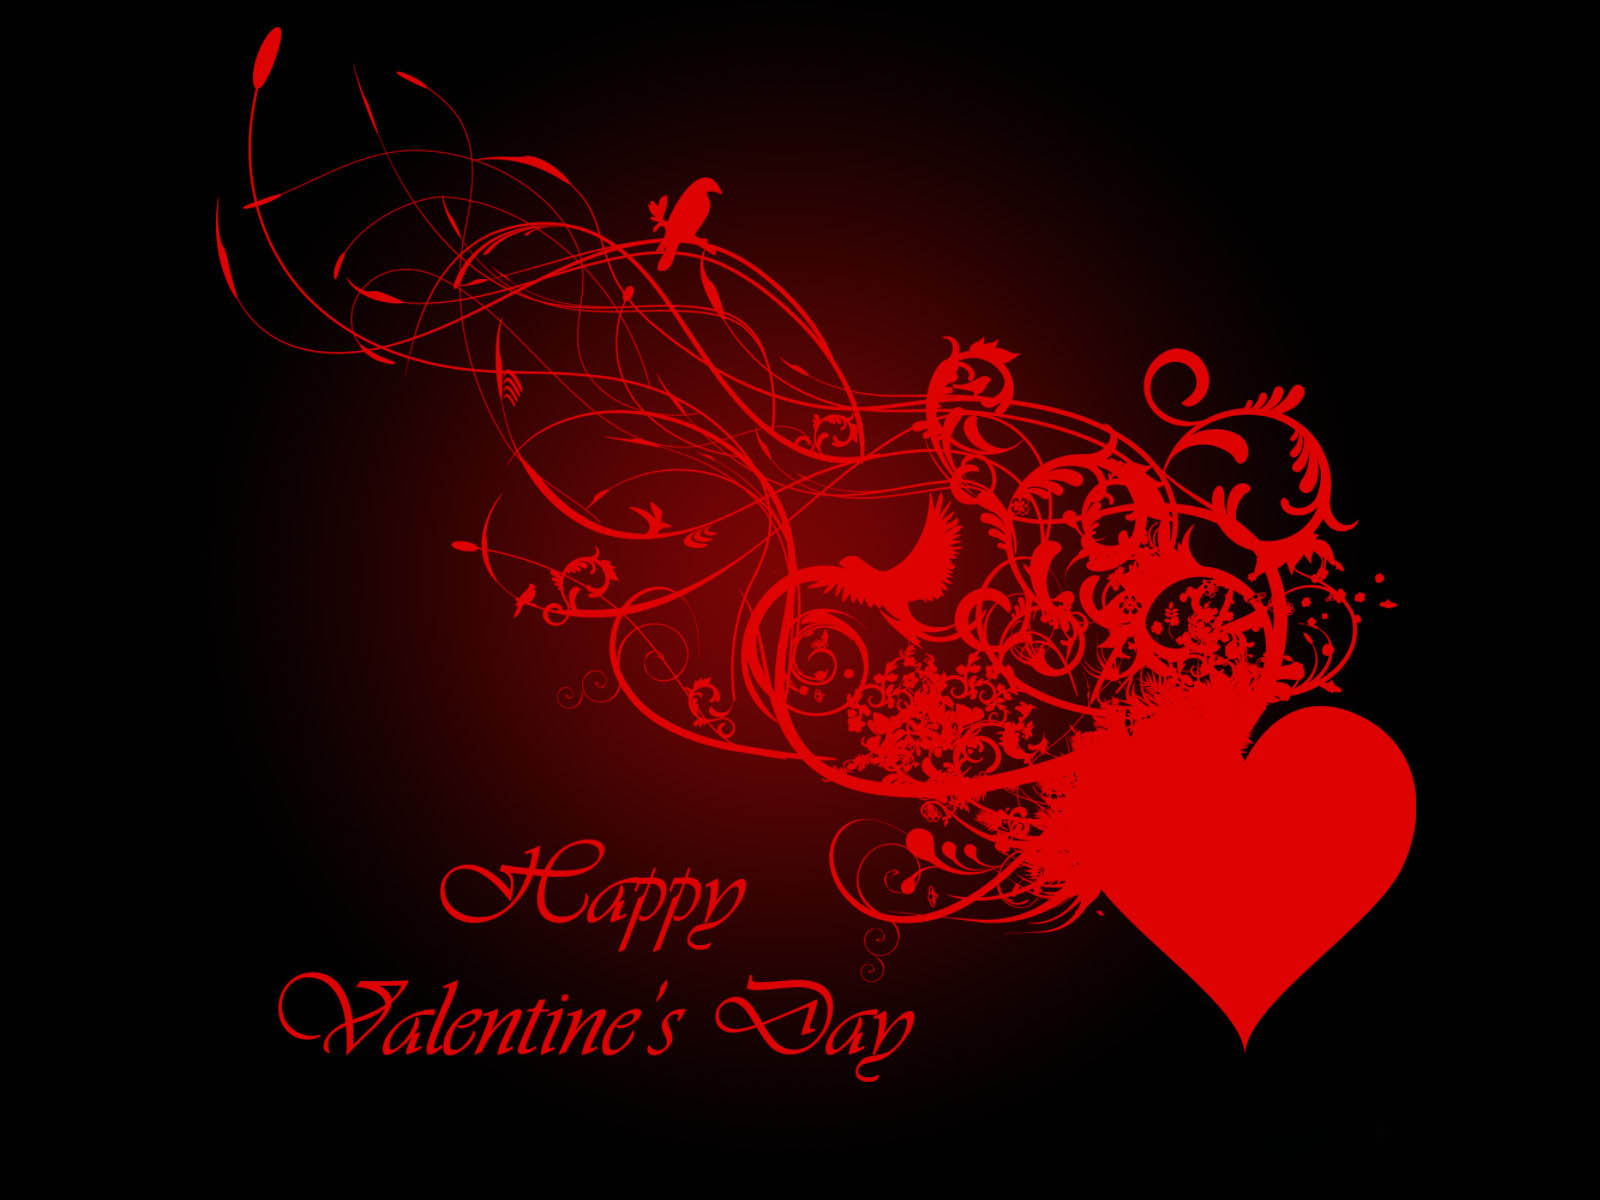 wallpapers: Valentines Day Wallpapers 2013